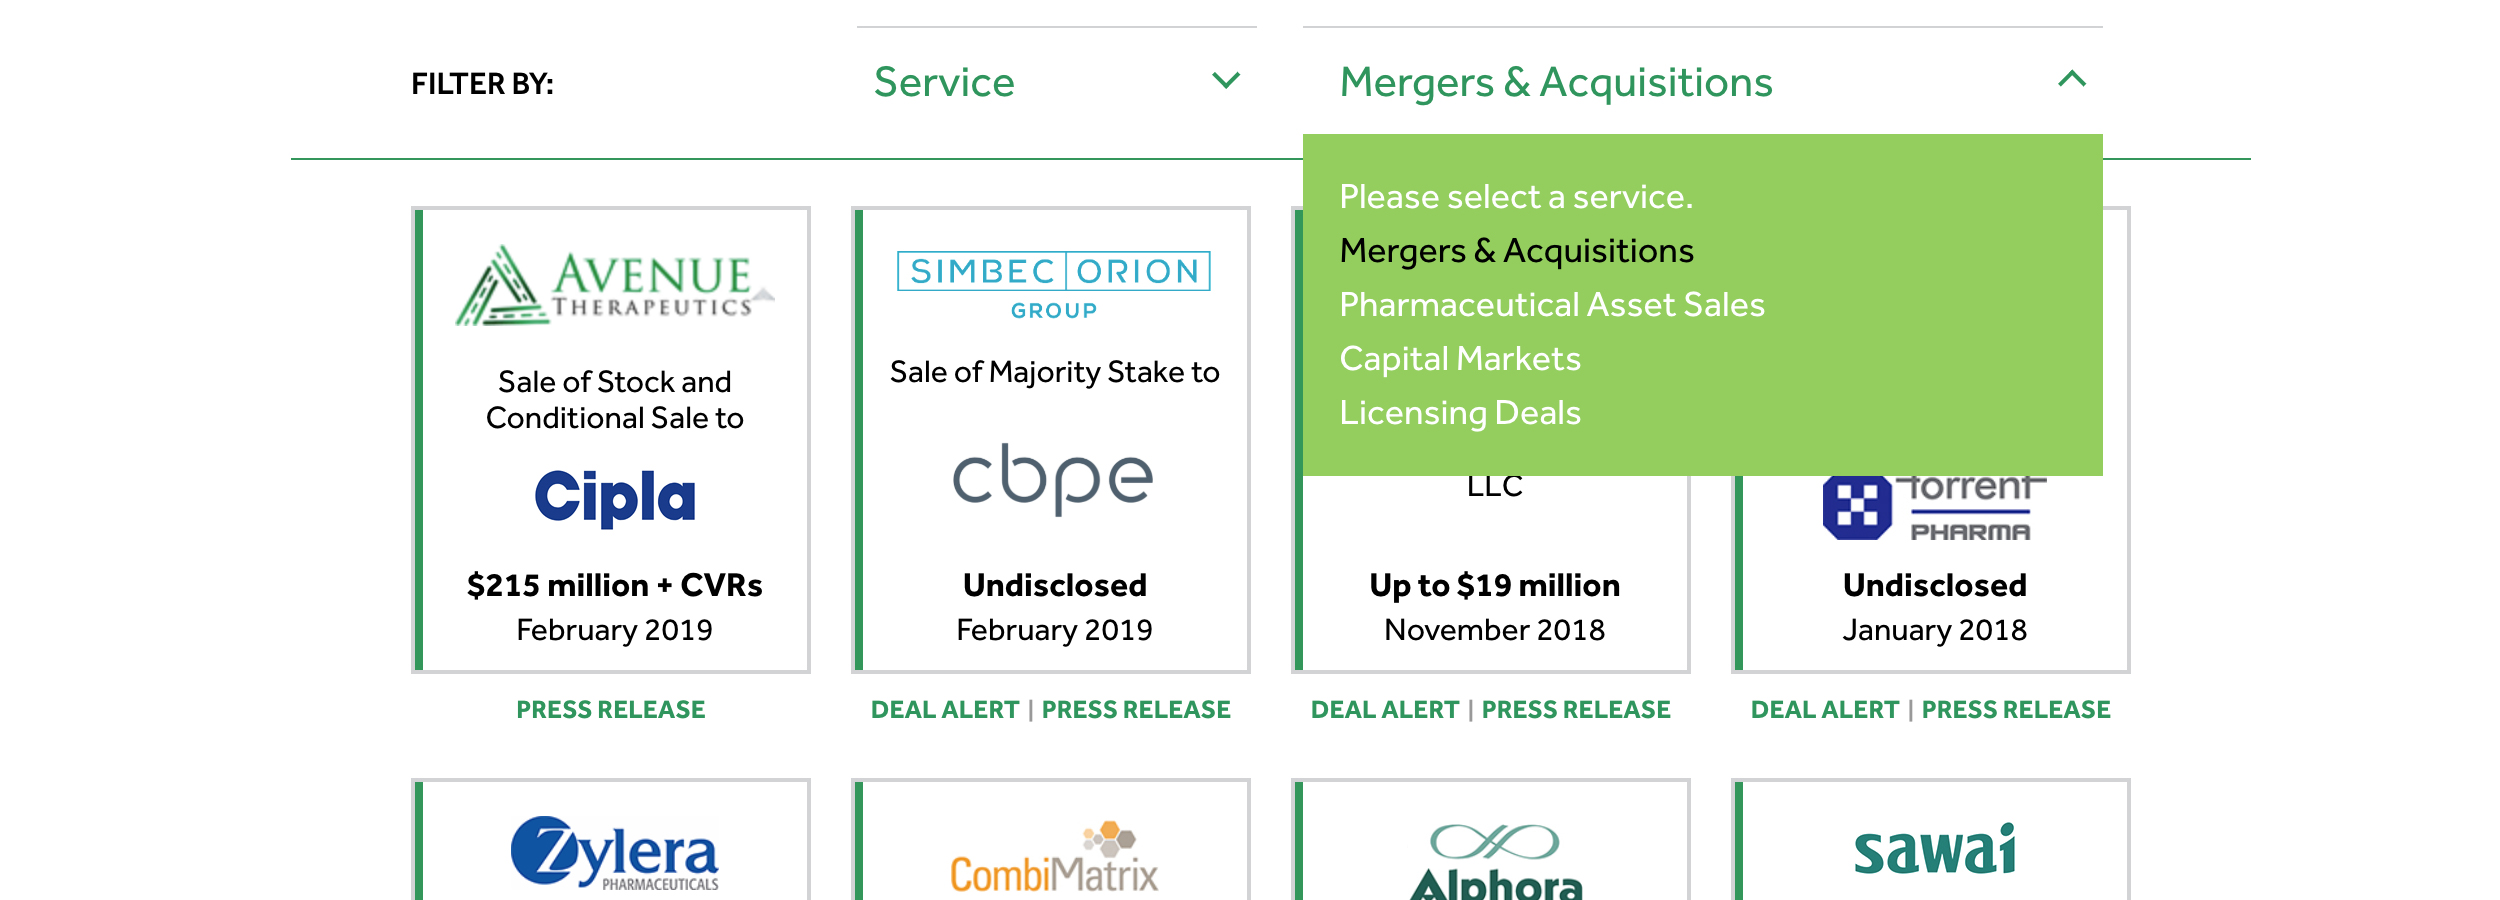 Comprehensive Transactions Section